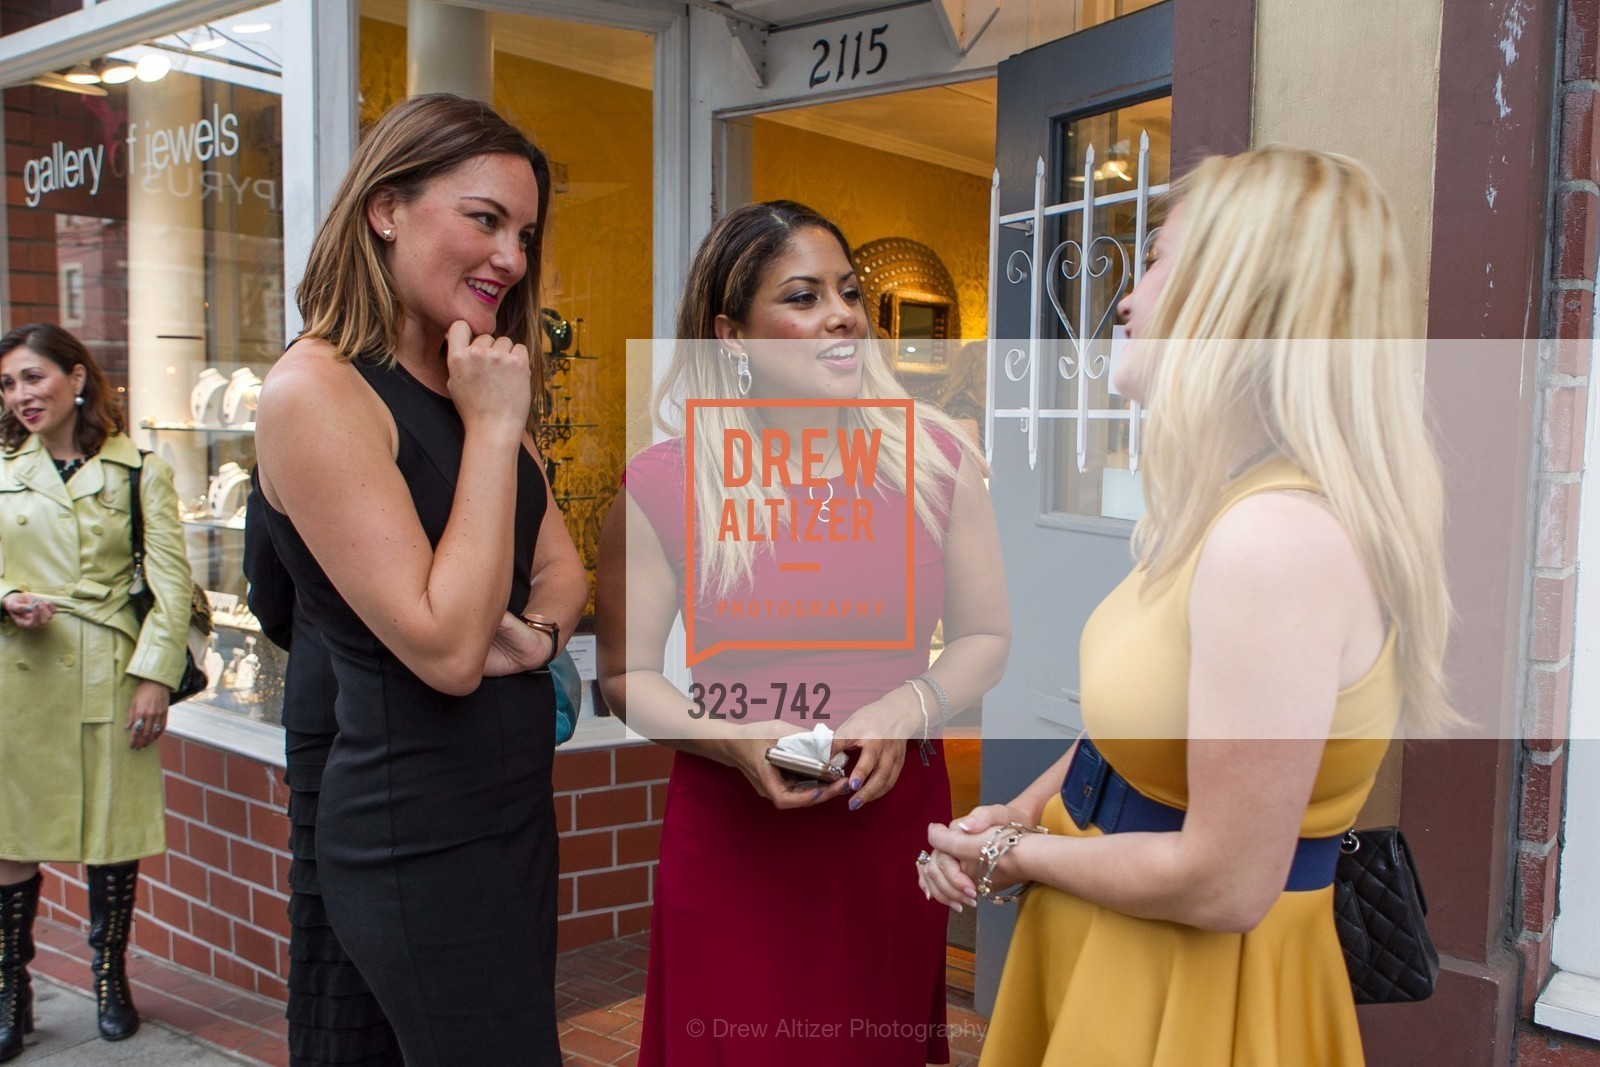 Rena Ramirez, Danielle Shareshian, LUXETIGERS & GALLERY OF JEWELS Benefit for Dress for Success, US, May 21st, 2015,Drew Altizer, Drew Altizer Photography, full-service event agency, private events, San Francisco photographer, photographer California